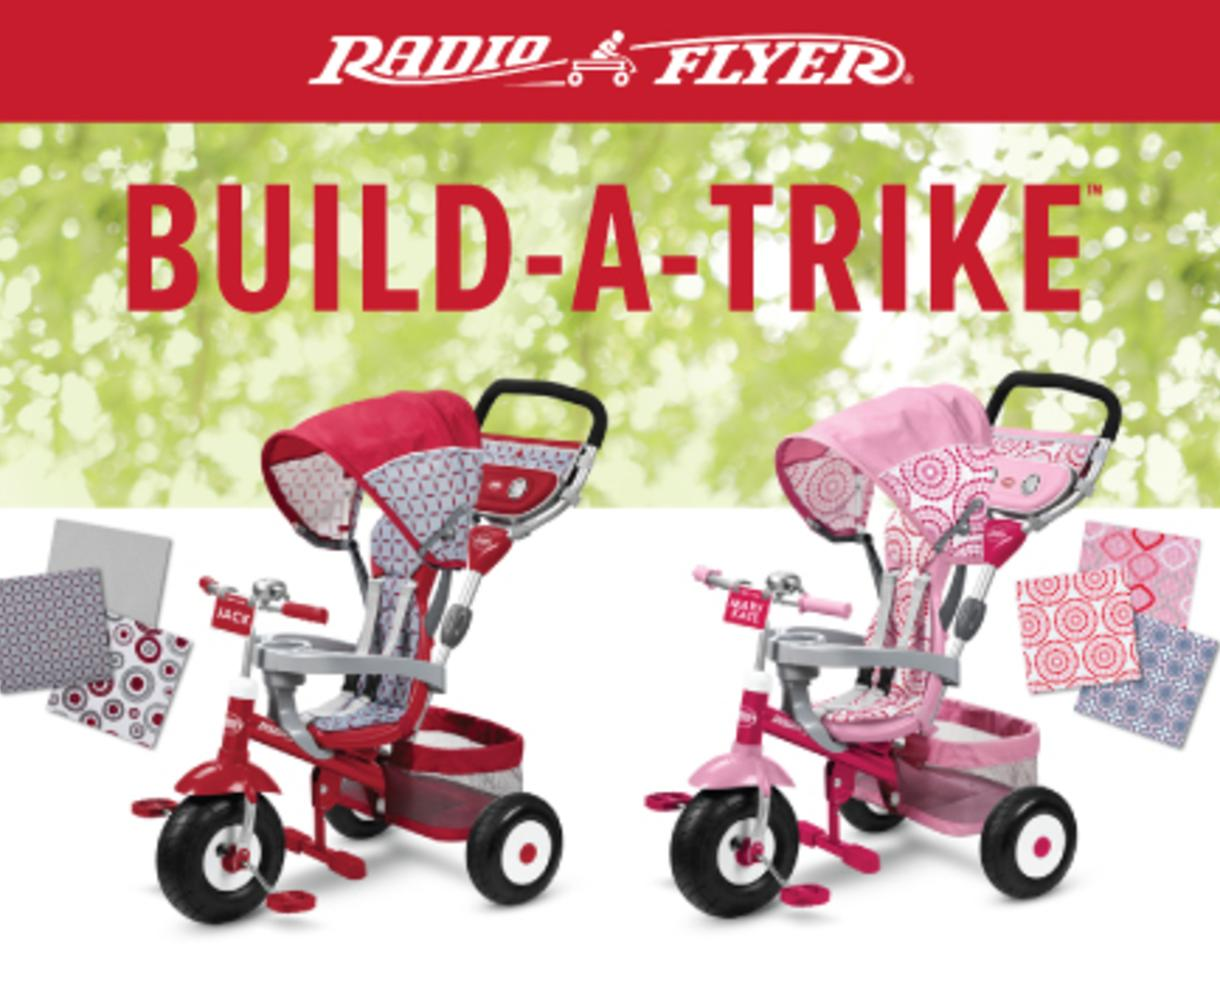 Aug 29, · Stroll 'N Trike for ages Build-A-Trike Take your child for a ride on the Radio Flyer® Deluxe Steer & Stroll Trike®! This unique design offers two ways to ride/5(31).